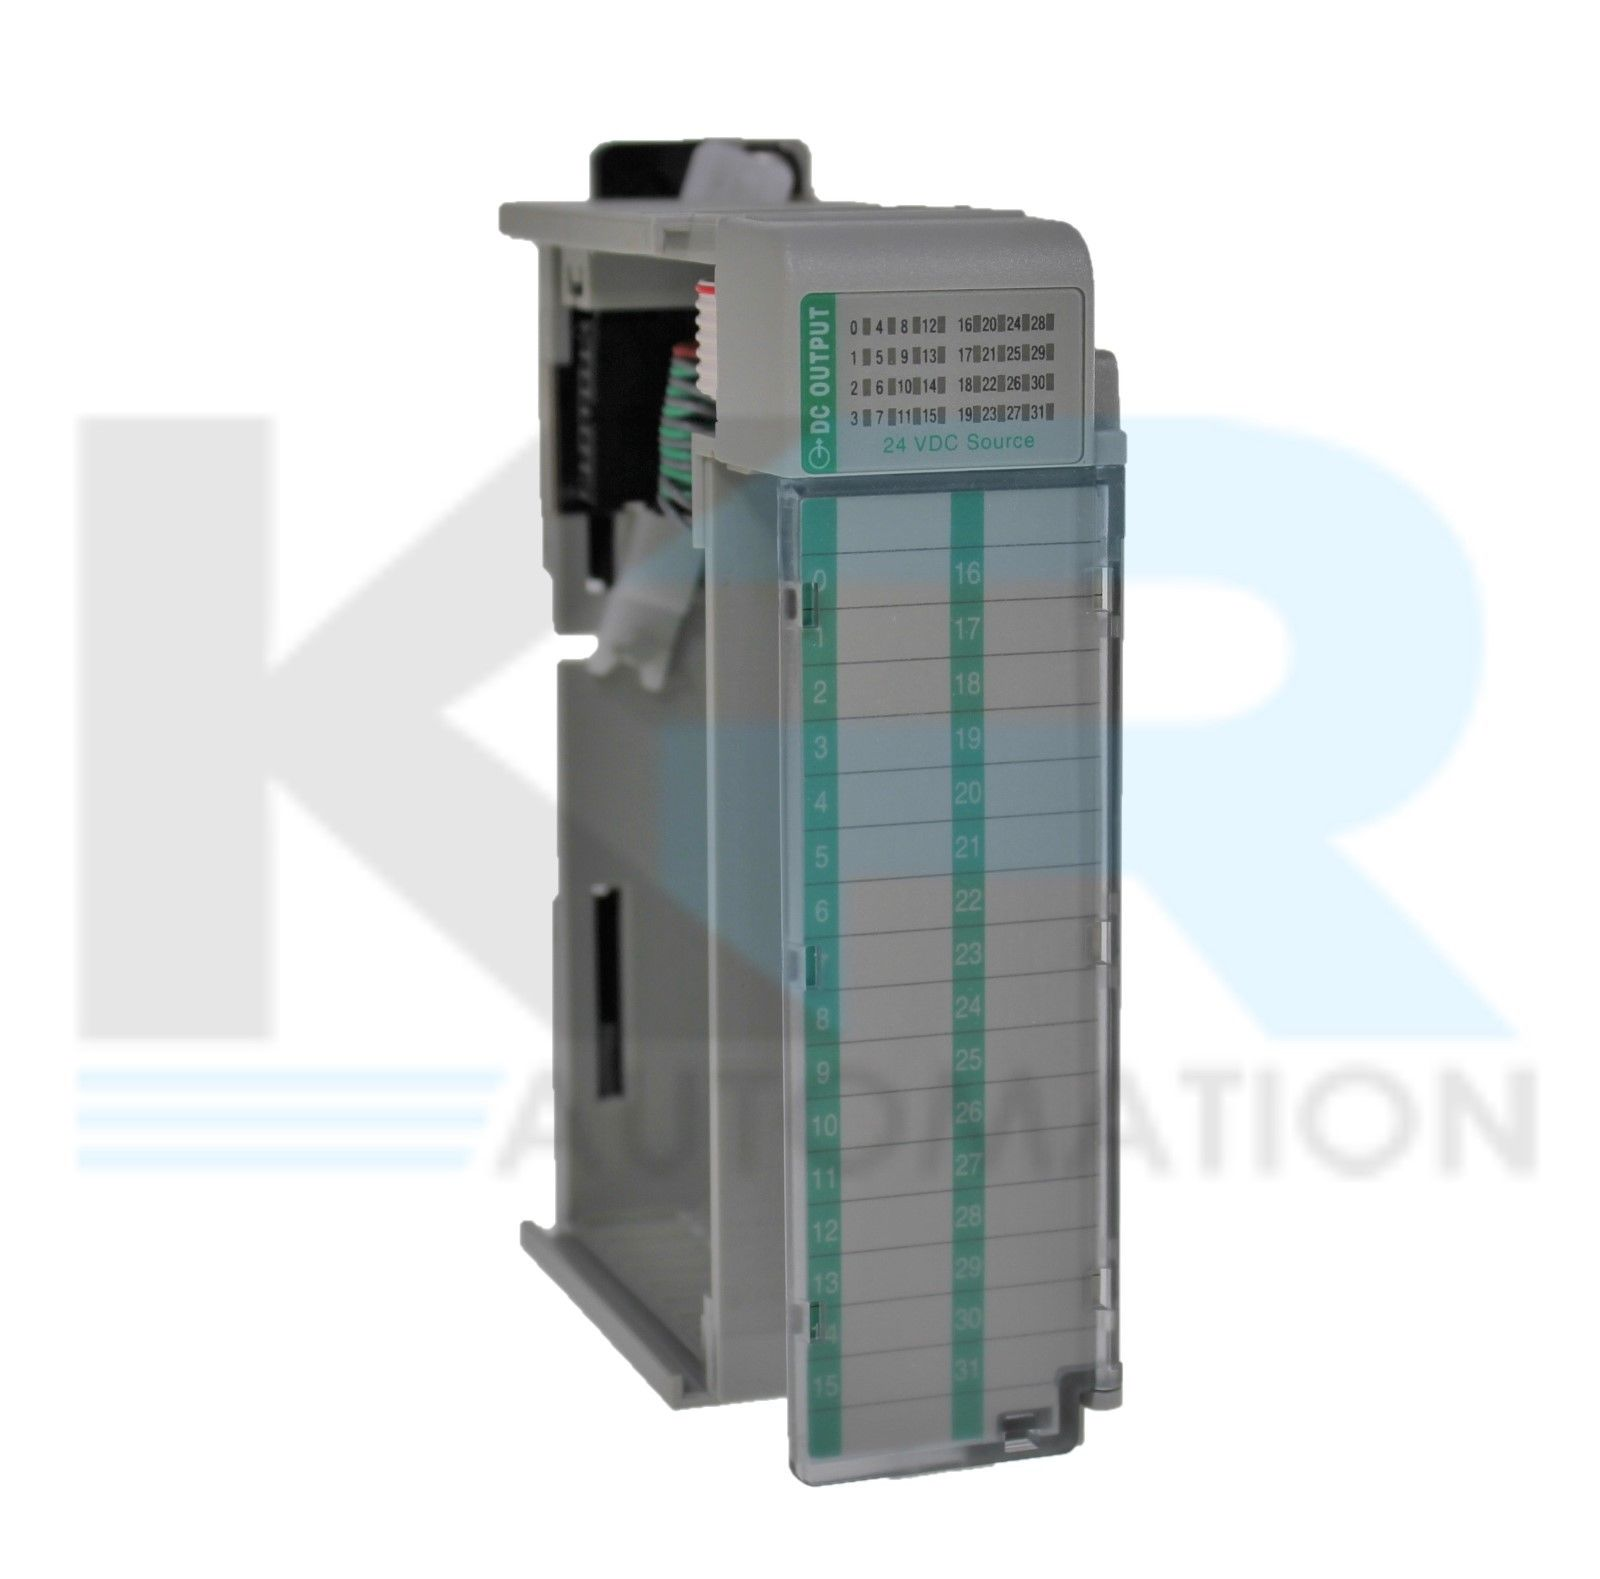 KR Automation - Buy, Sell Allen Bradley, PanelView, PanelView Plus